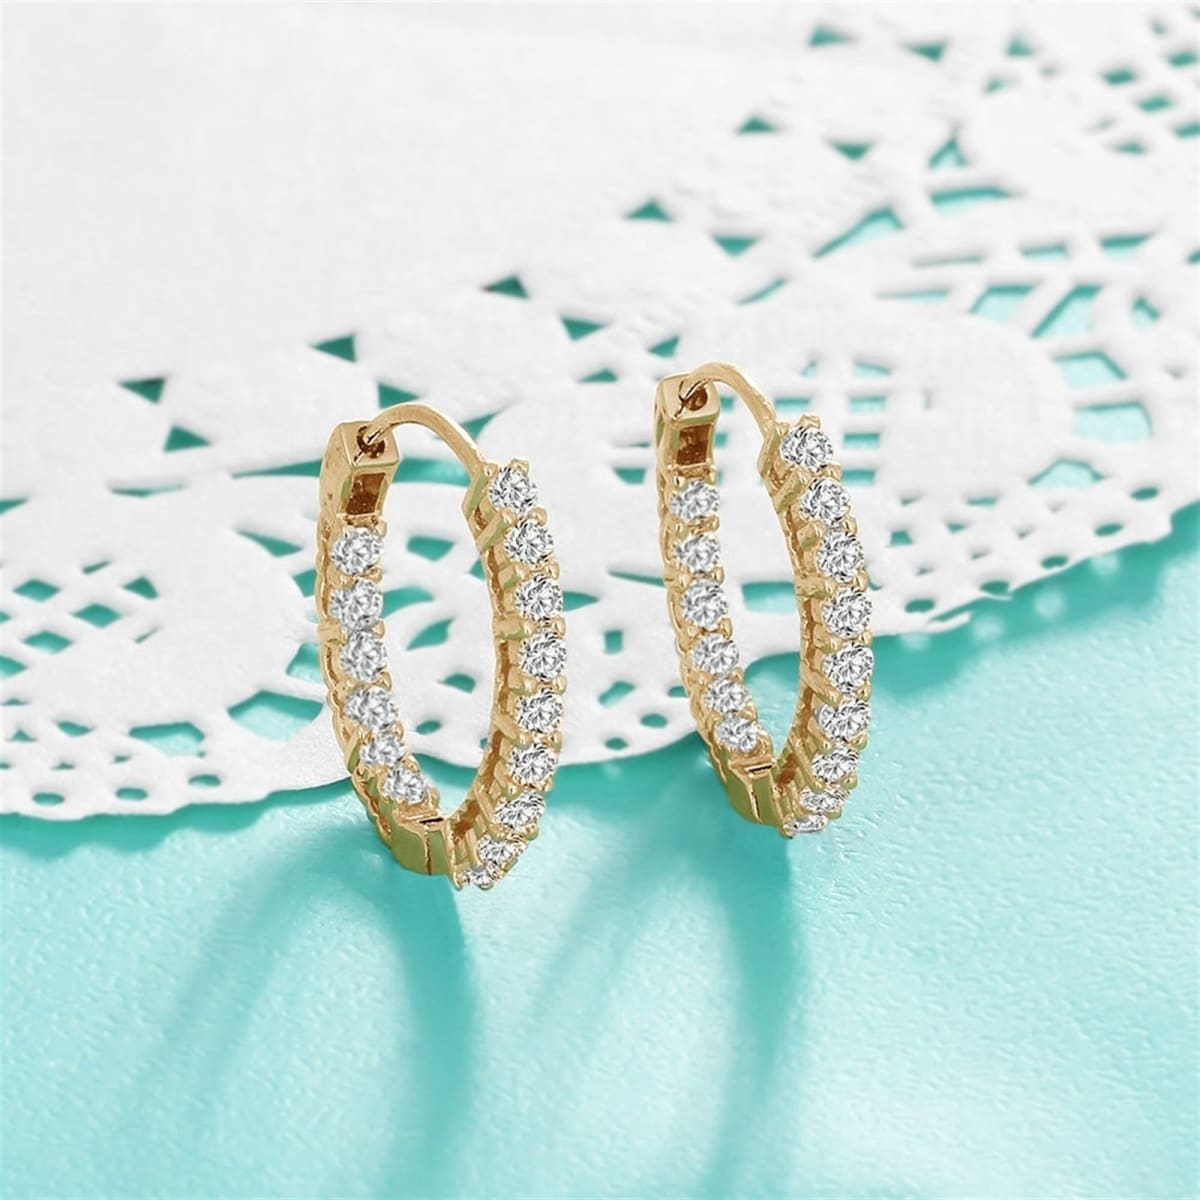 Double Sided Cubic Zirconia Huggie EarringsSale Price $3.99$3.99Retail Price $29.99$29.99(24 revi... | Jane